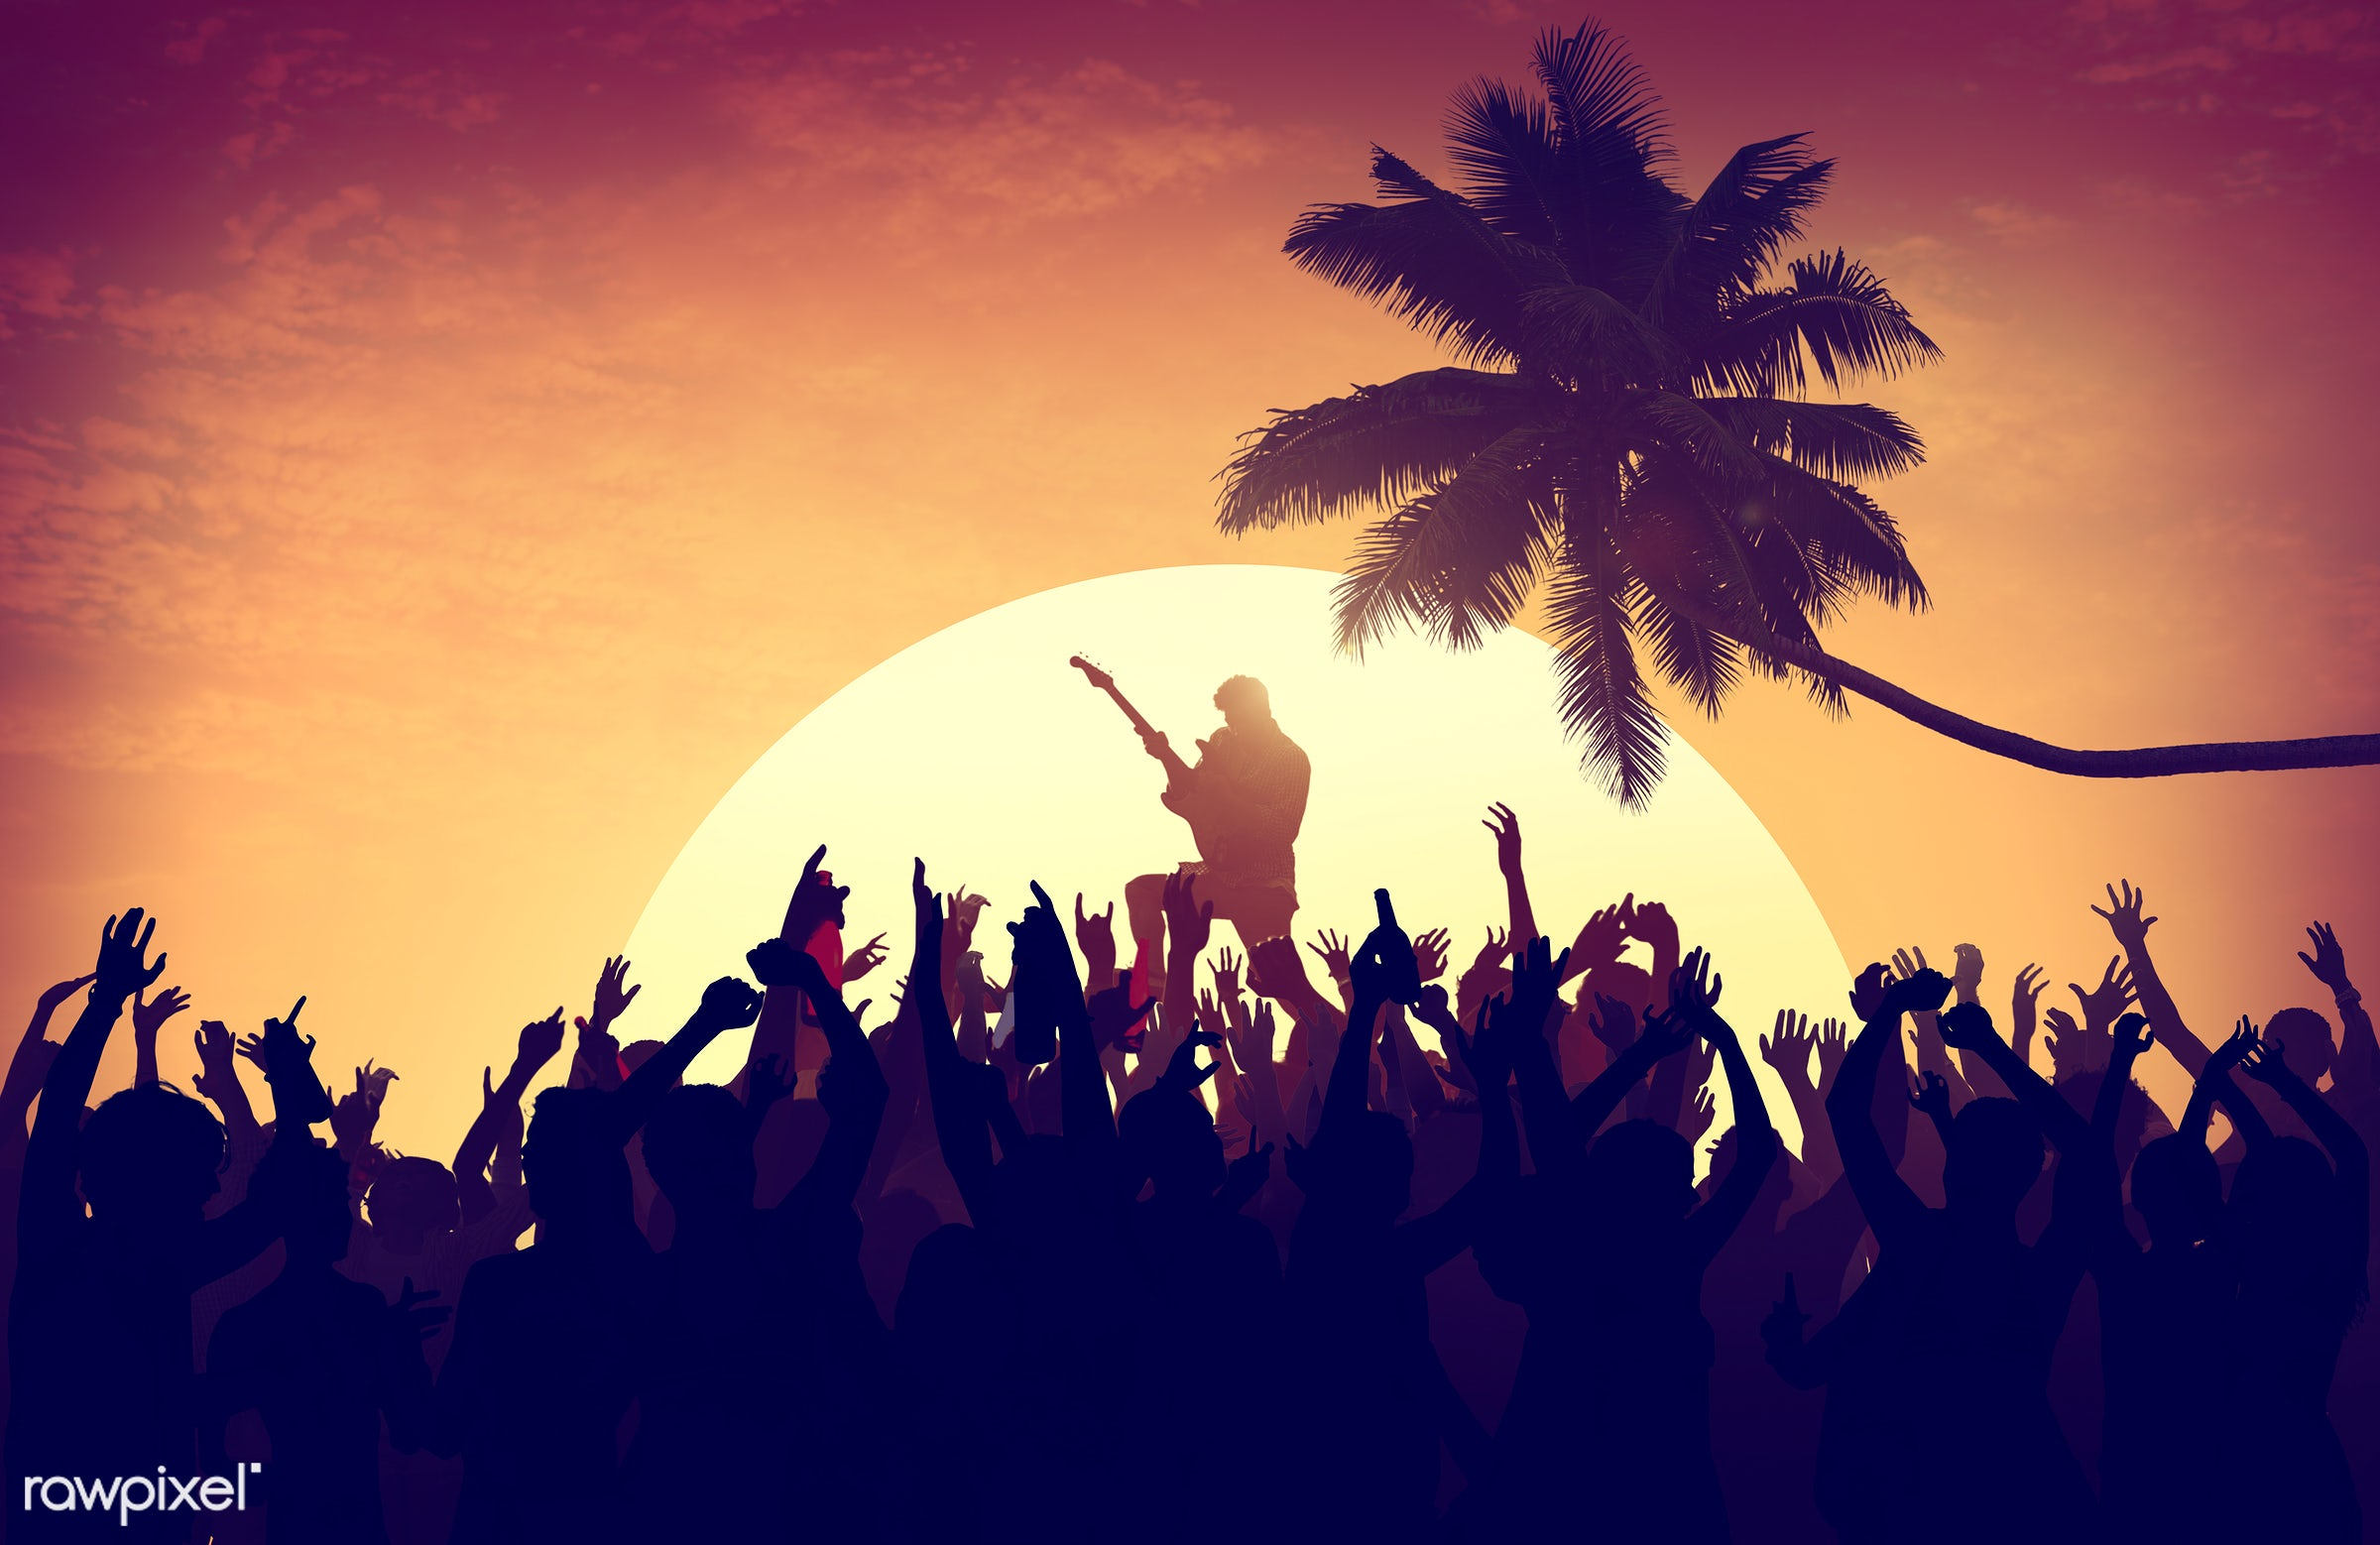 adolescence, audience, back lit, beach, carefree, celebration, cheerful, coconut palm tree, communication, community,...